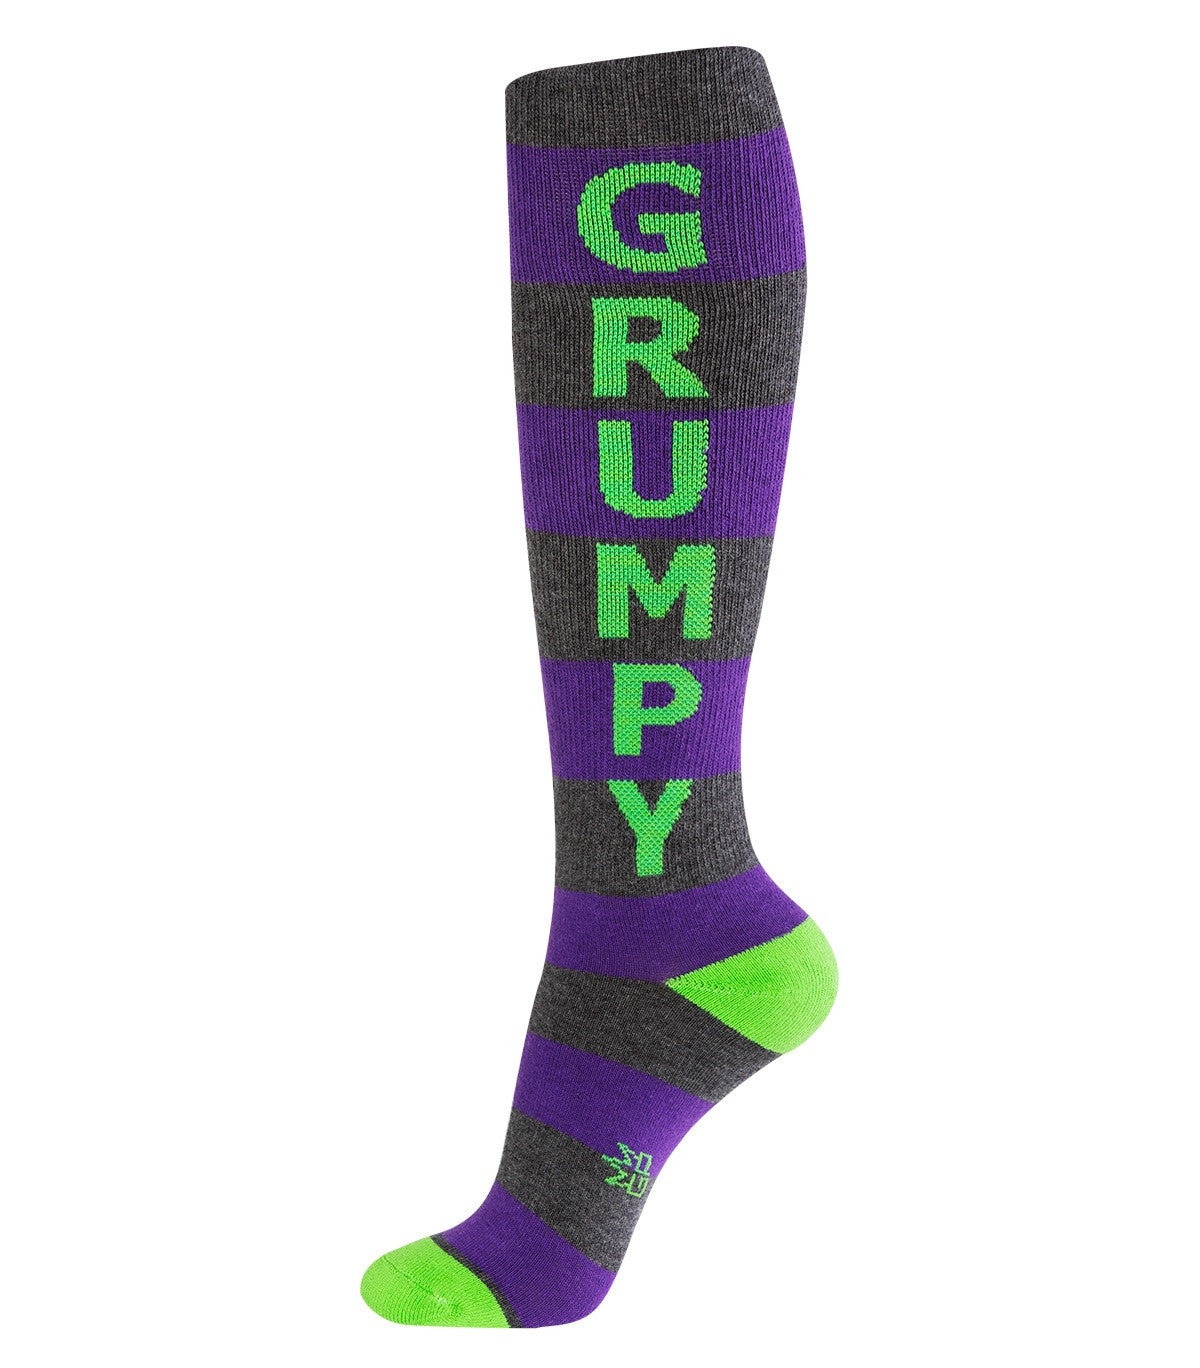 Grumpy Socks - Purple, Green and Gray Unisex Knee High Socks - Off The Wall Toys and Gifts